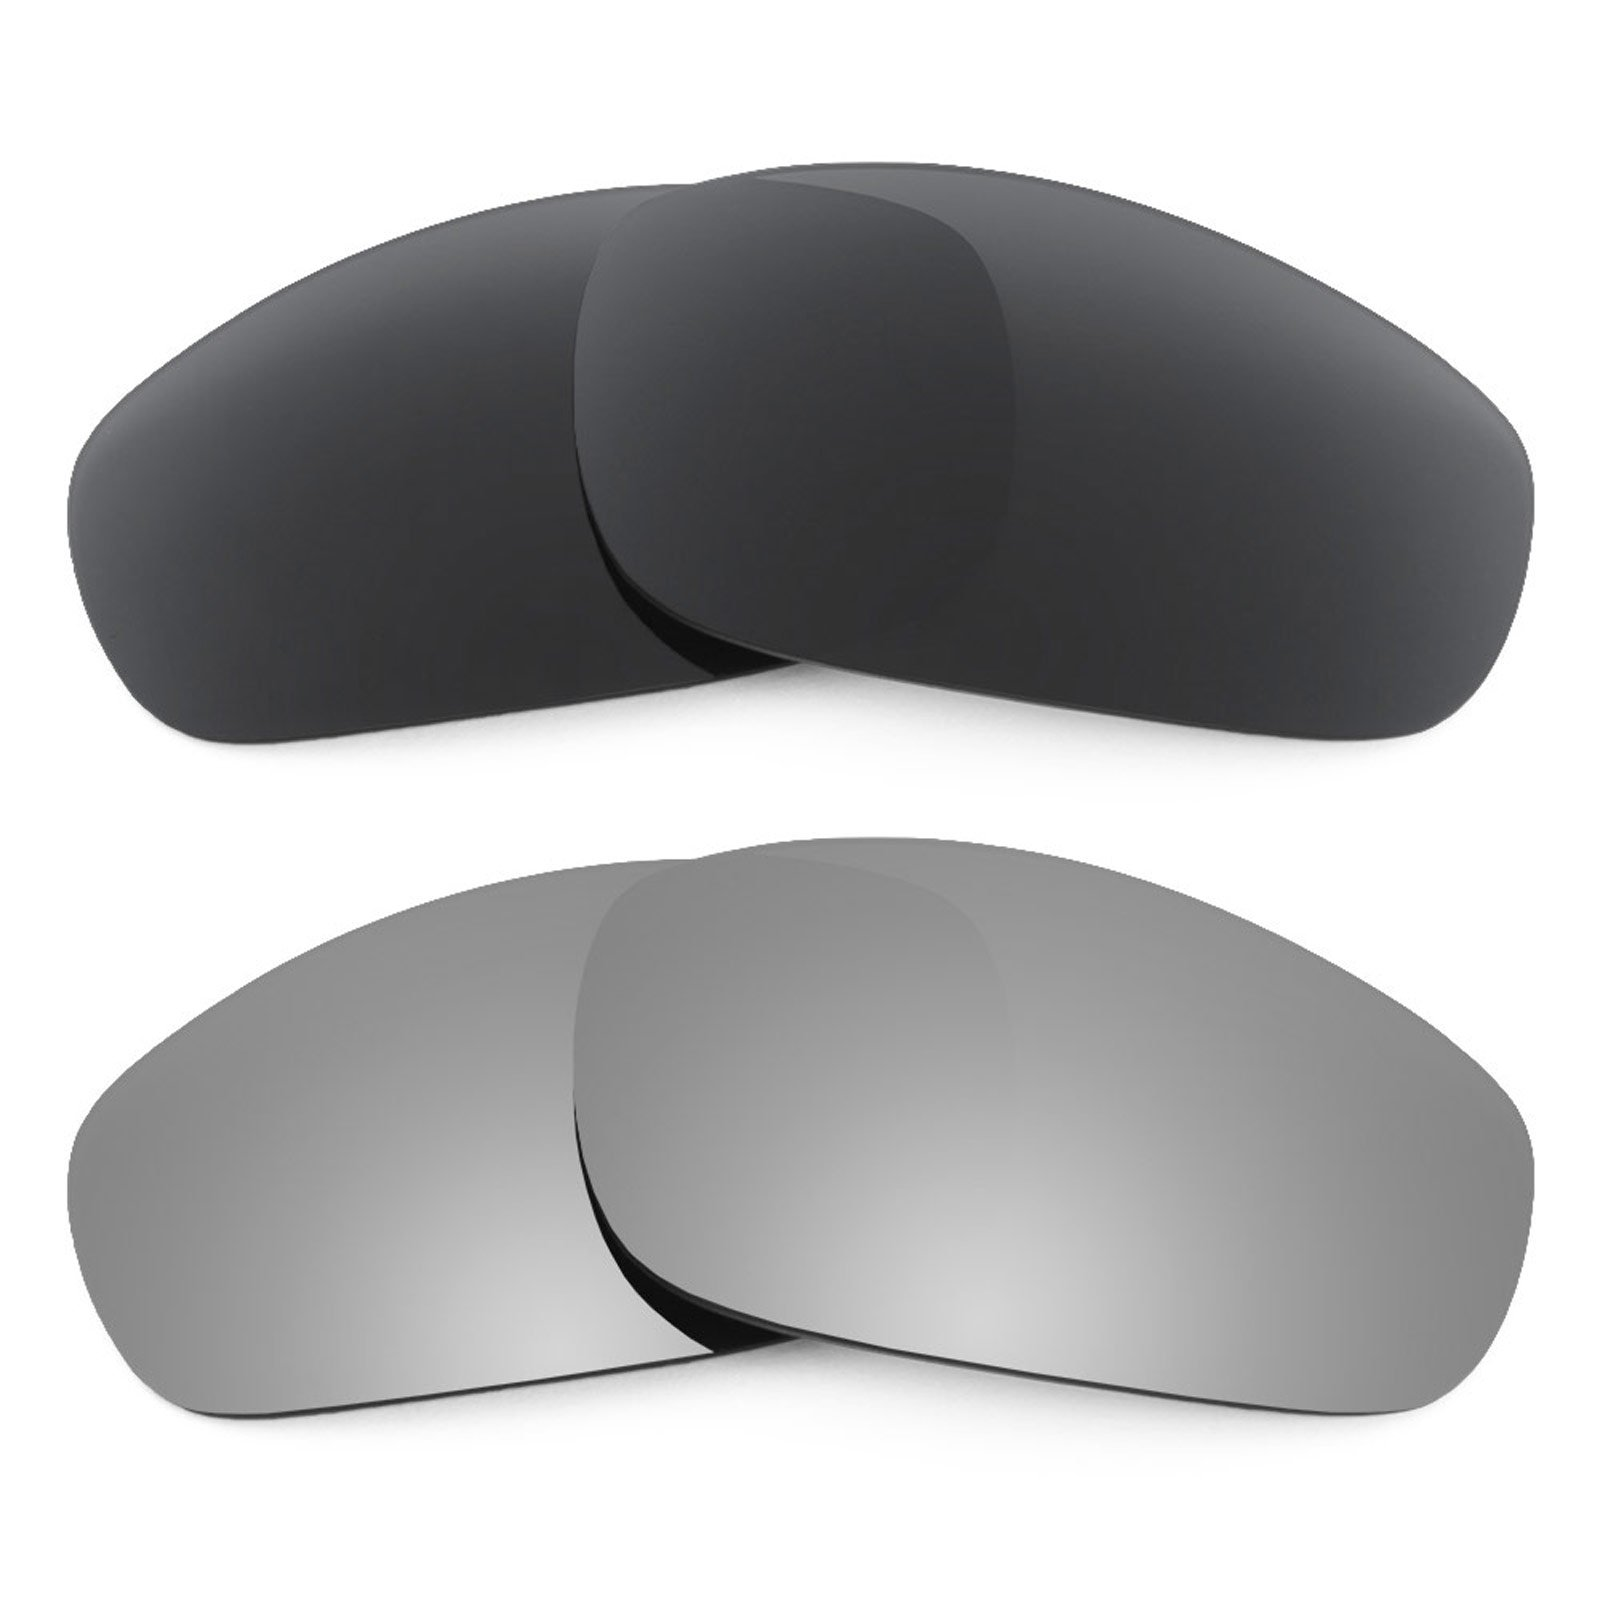 Revant Replacement Lenses for Oakley Fives 4.0 2 Pair Combo Pack K001 by Revant